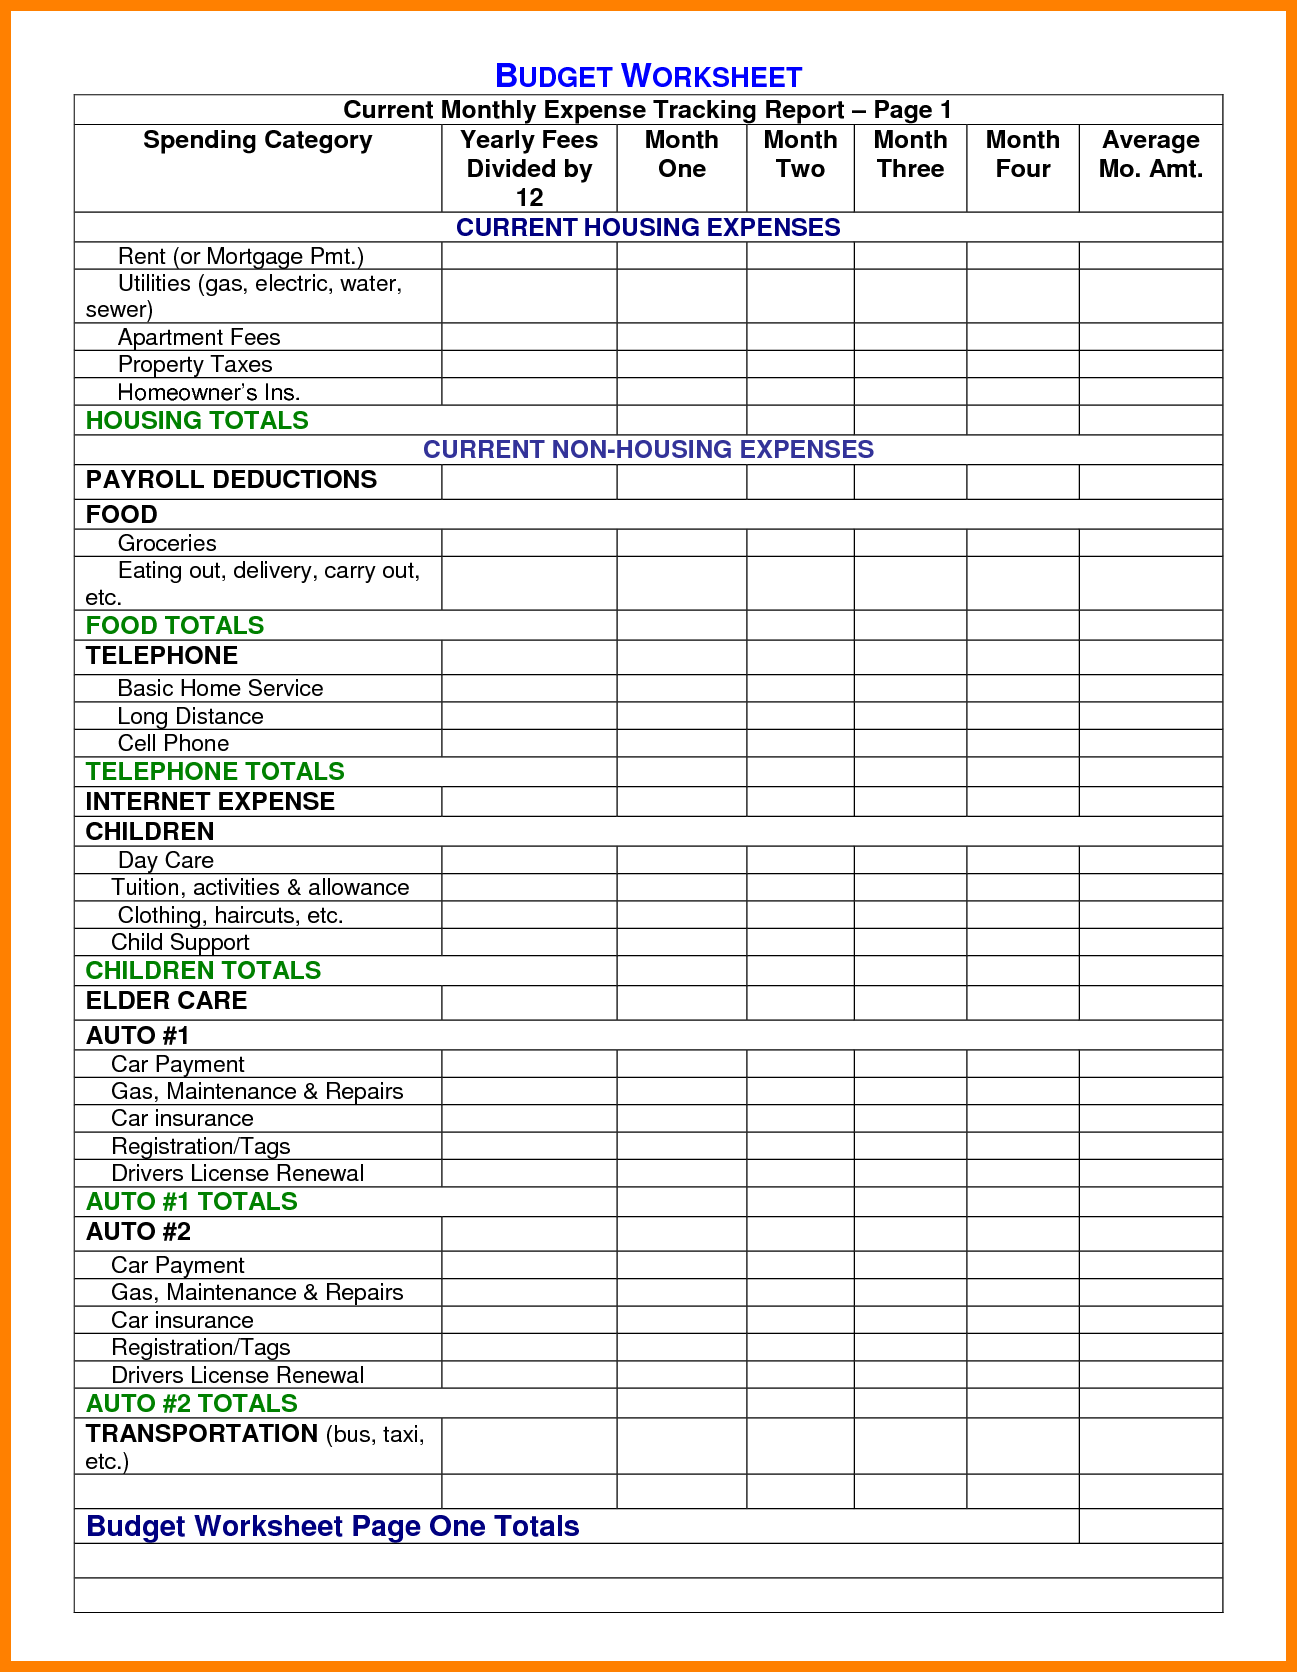 Letters Of Dave Ramsey Budget Spreadsheet Excel With Dave Ramsey Budget Spreadsheet Excel In Excel